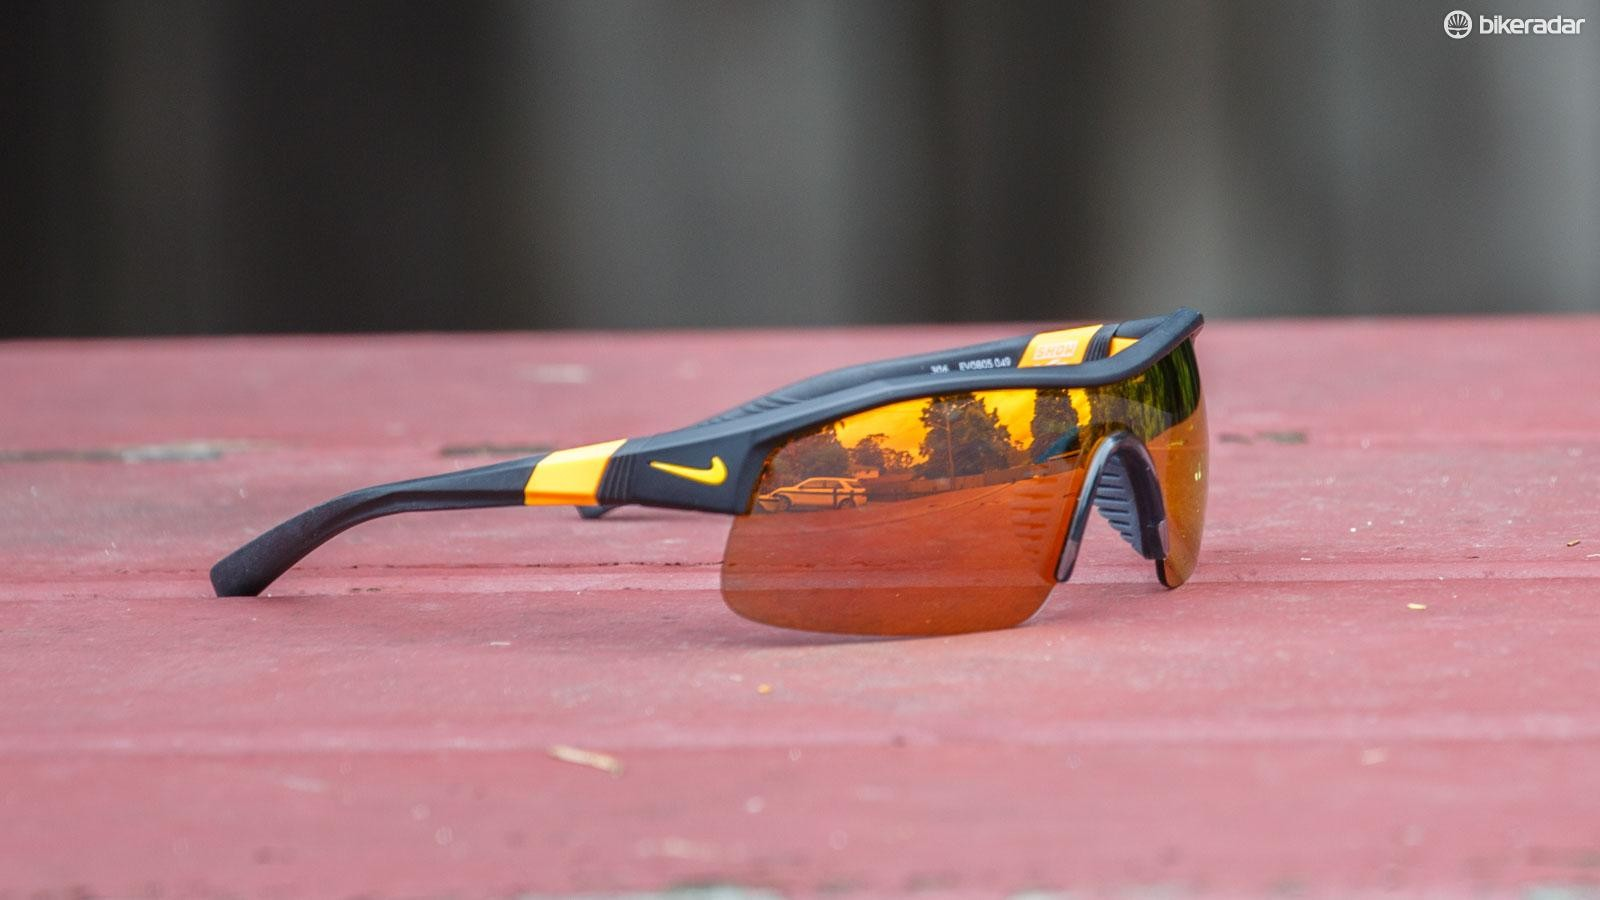 Nike's Show X1 sunglasses are pitched as an all-round sports sunglass, and they do a respectable job for cycling